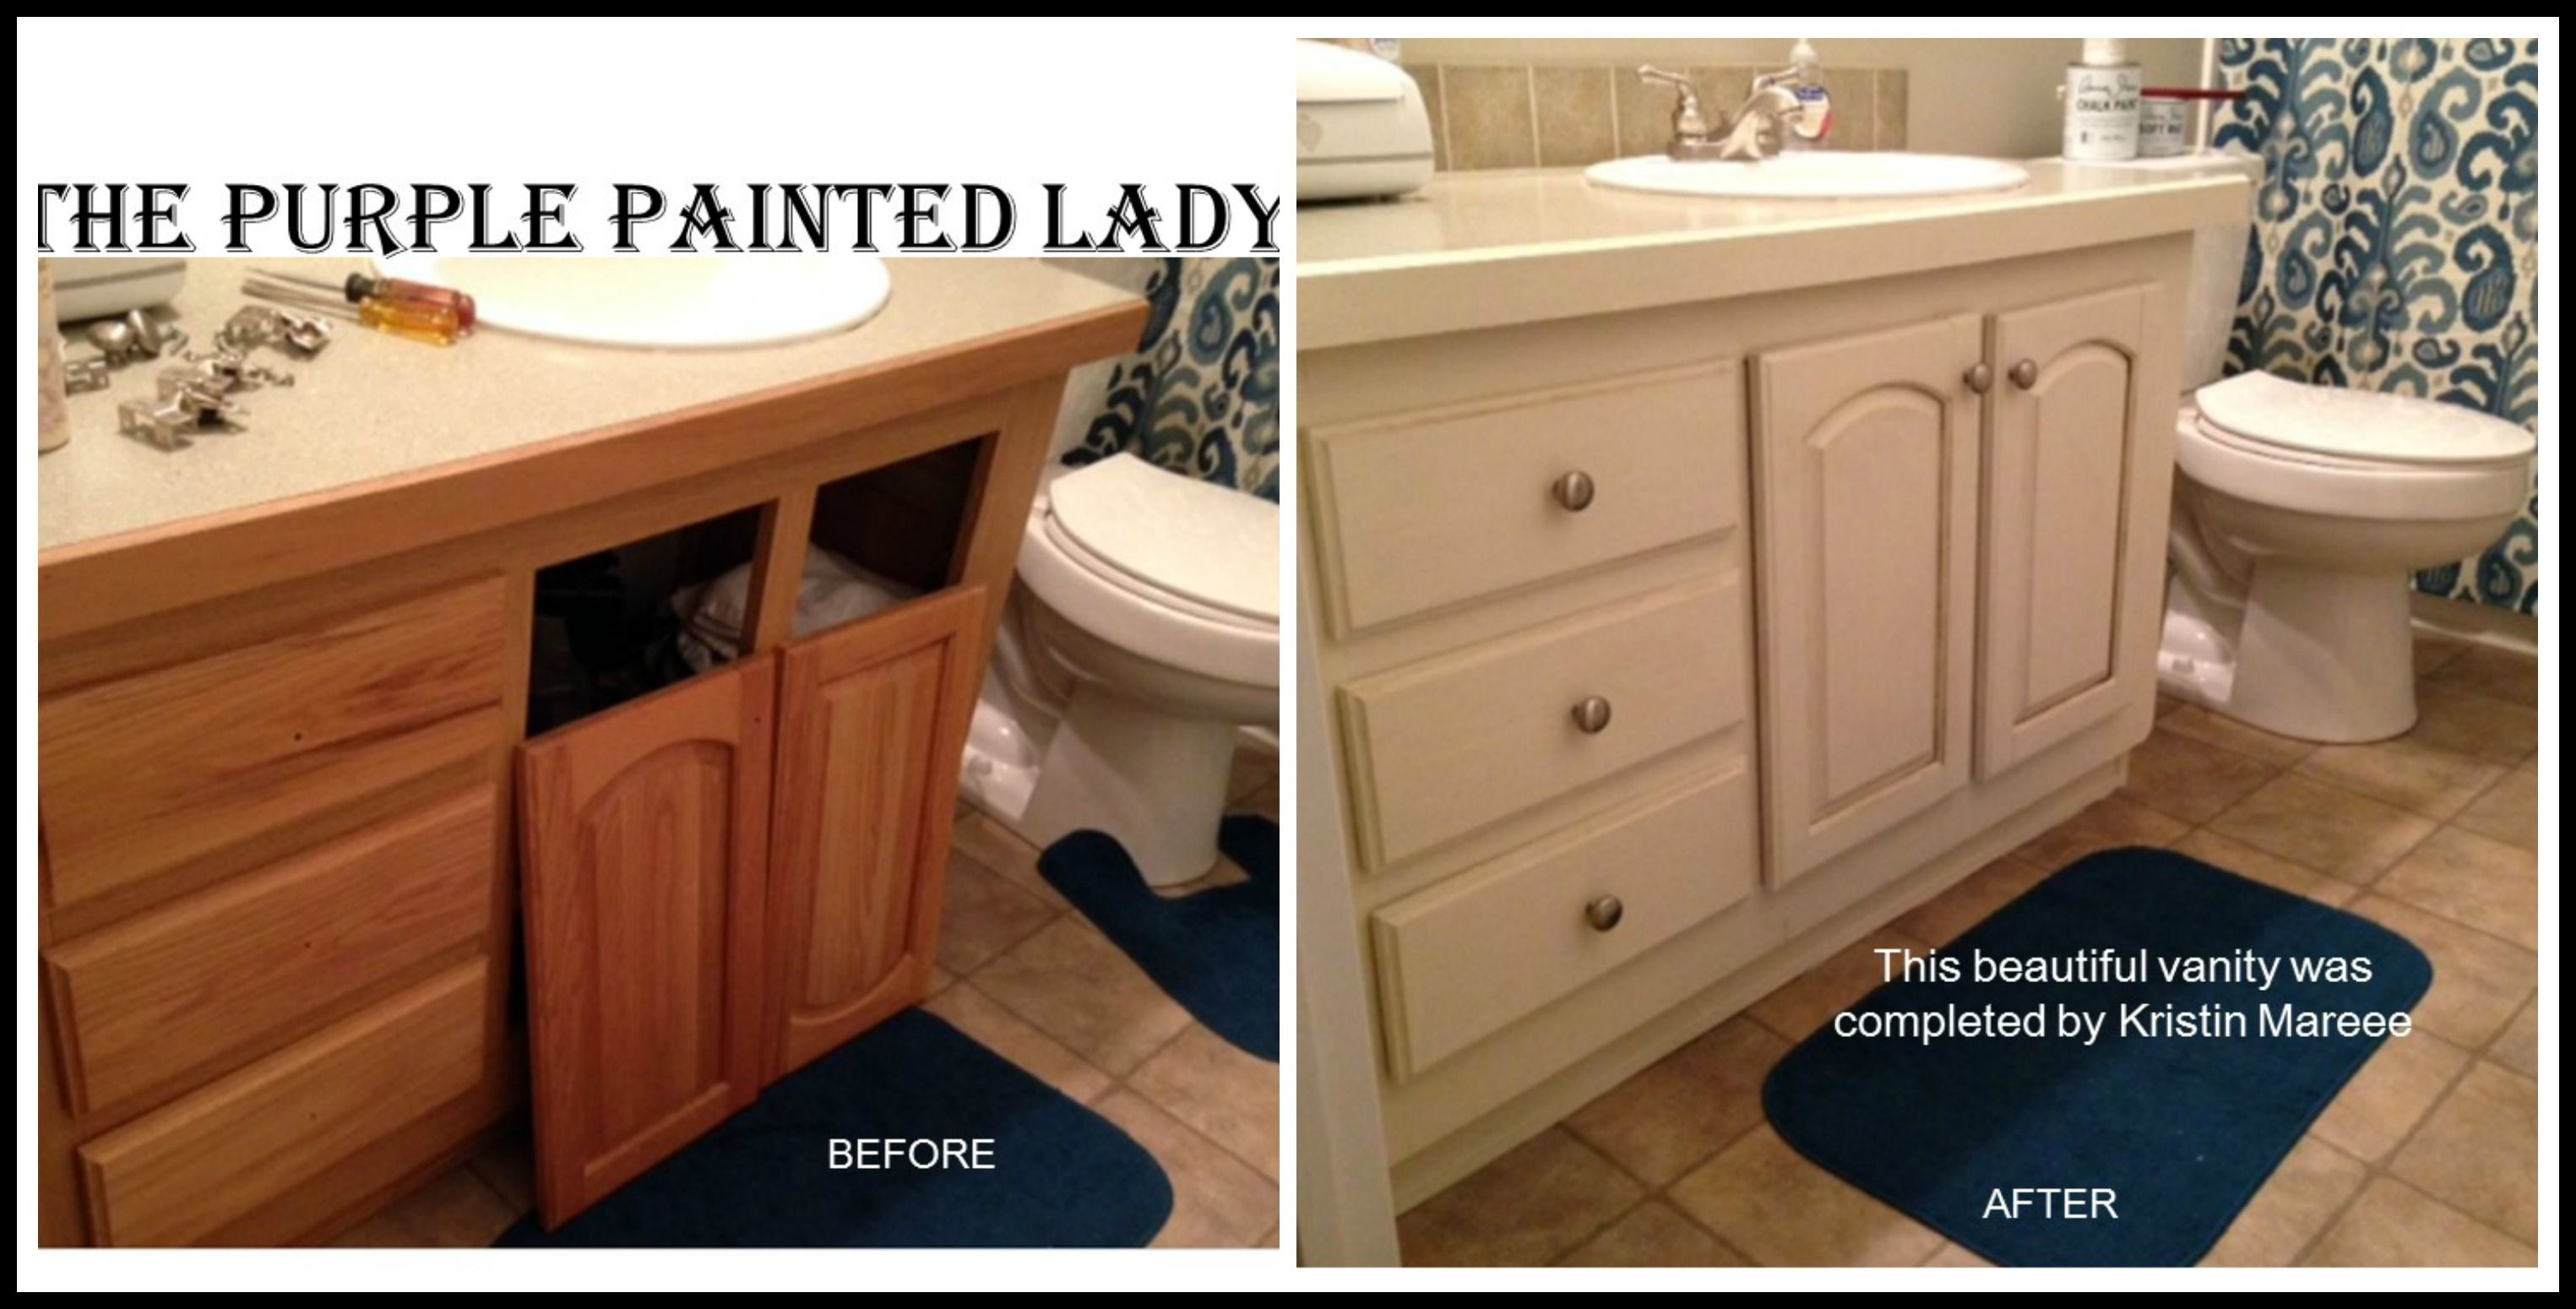 The Purple Painted Lady Painting Bathroom Vanity Chalk Paint®. We sell it  for $34.95